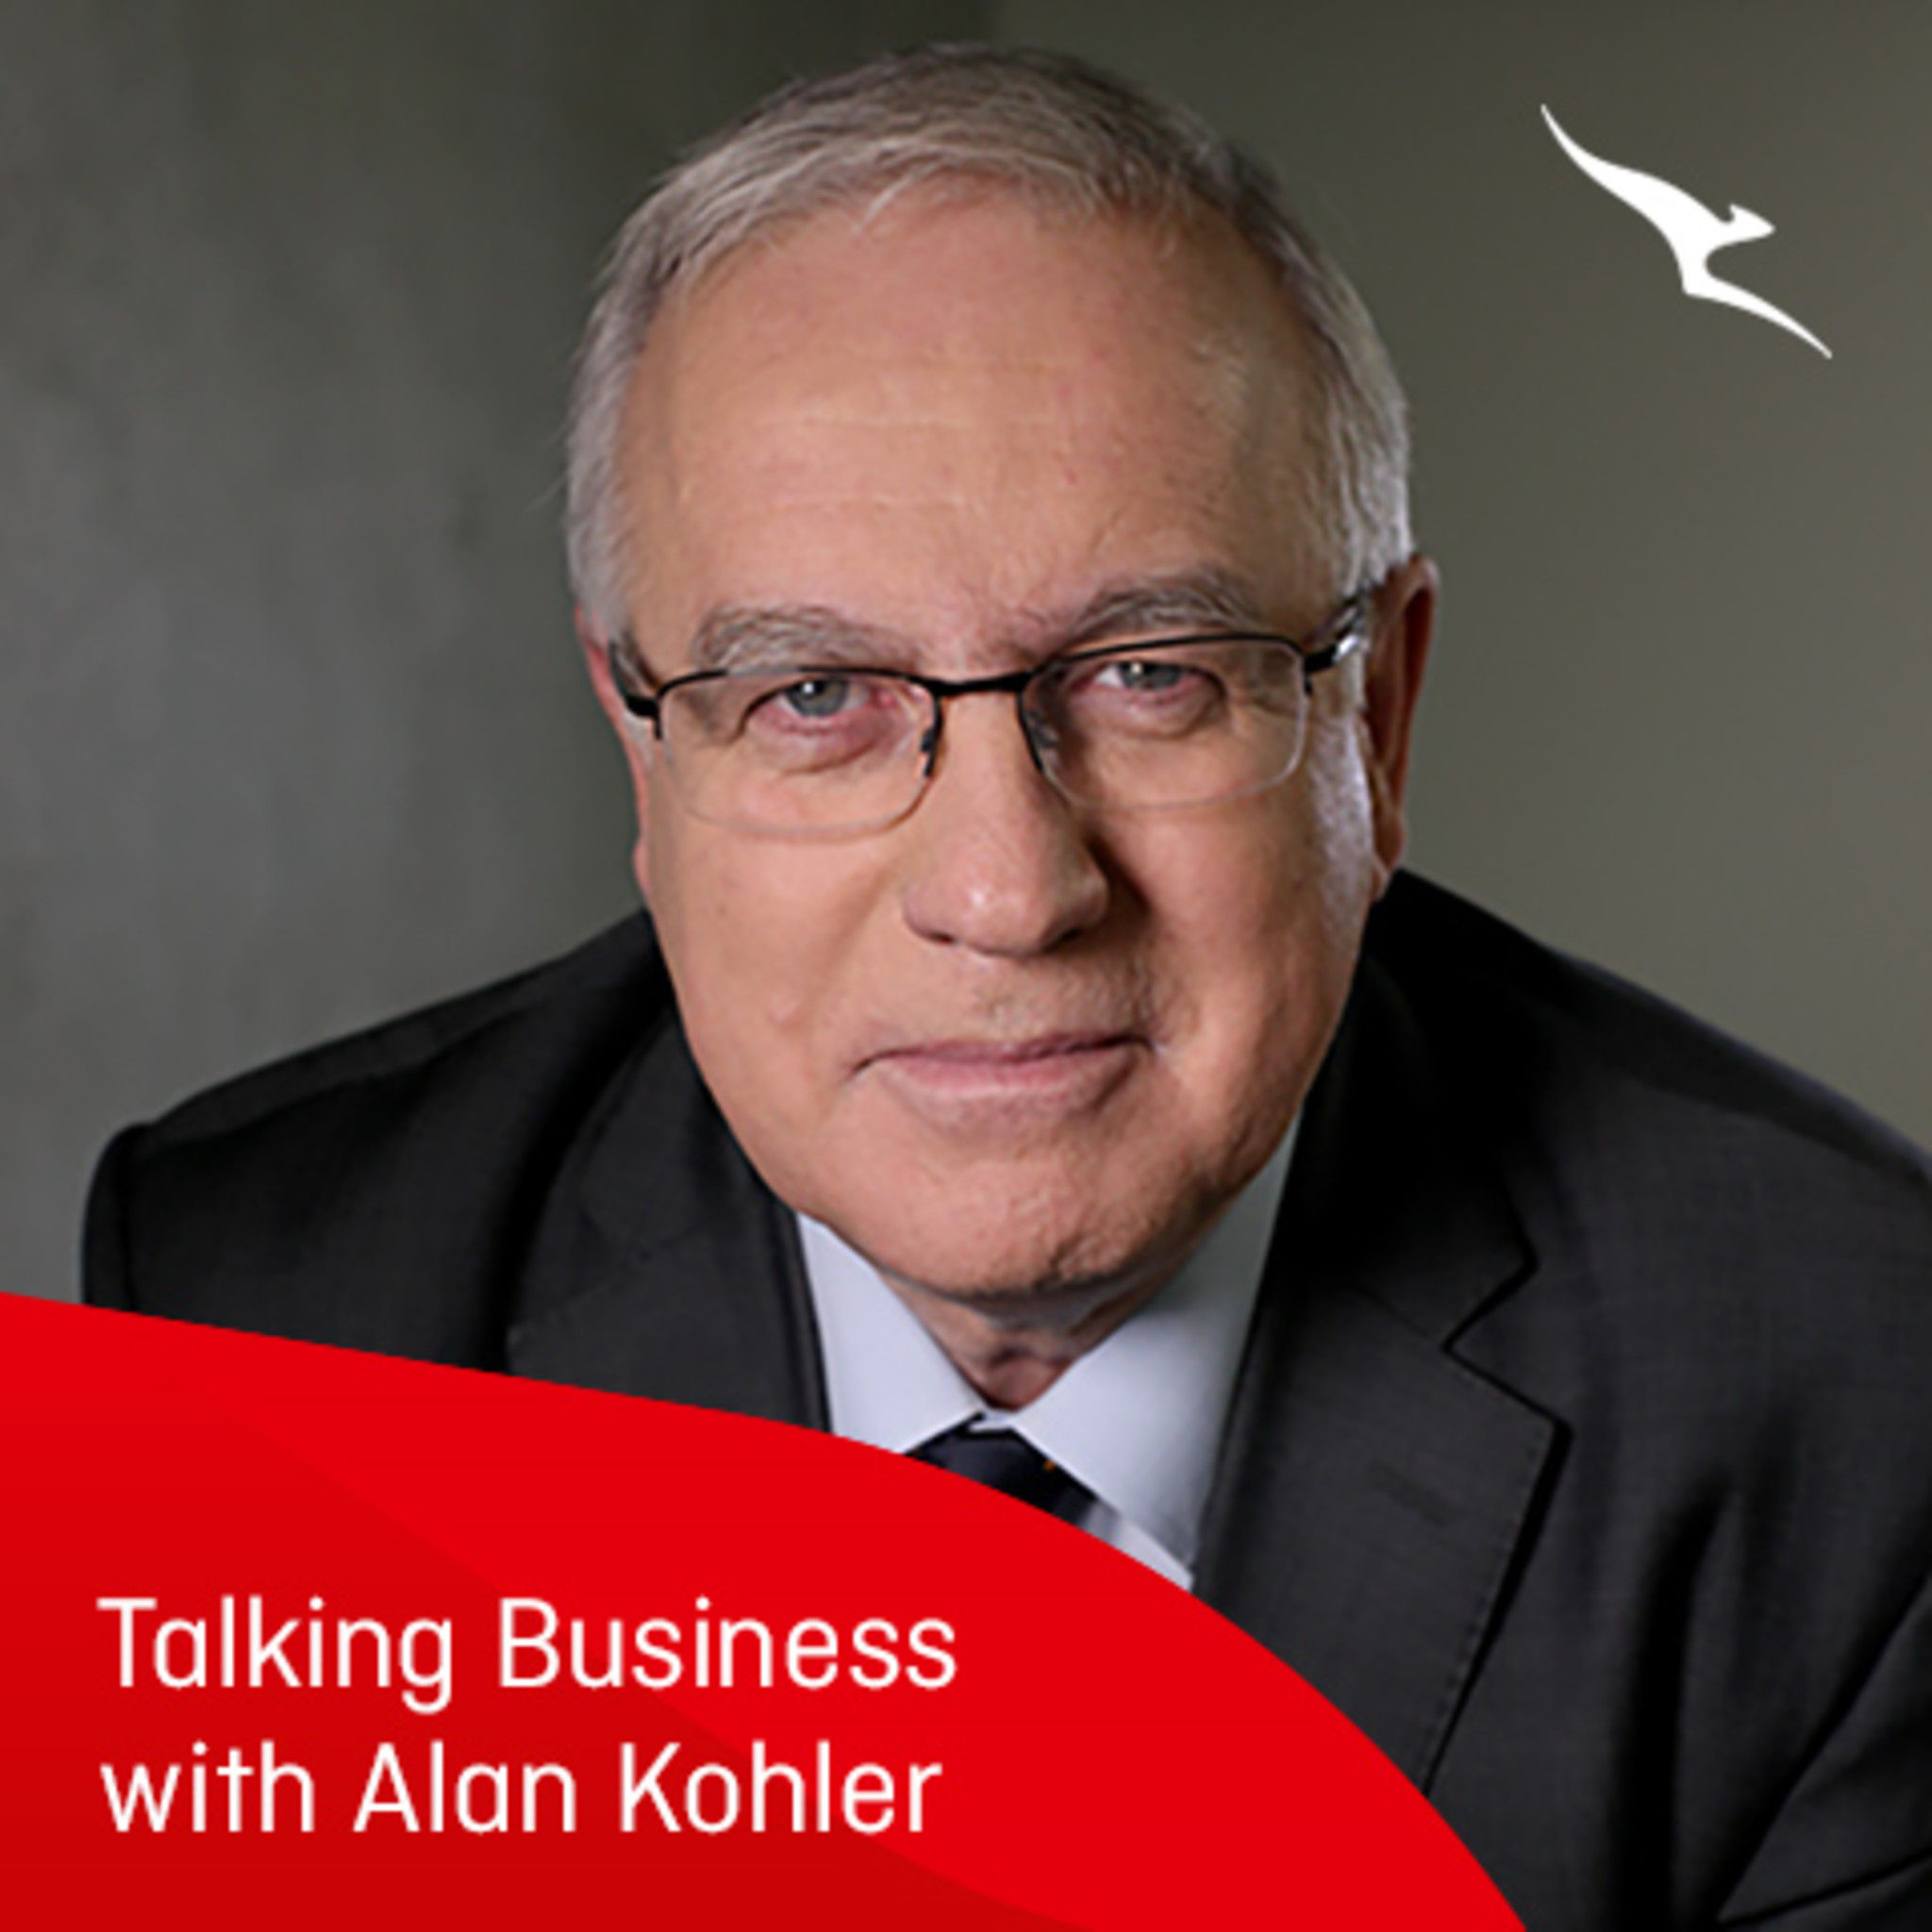 7b9a59fa00 Talking Business with Alan Kohler by Qantas on Apple Podcasts